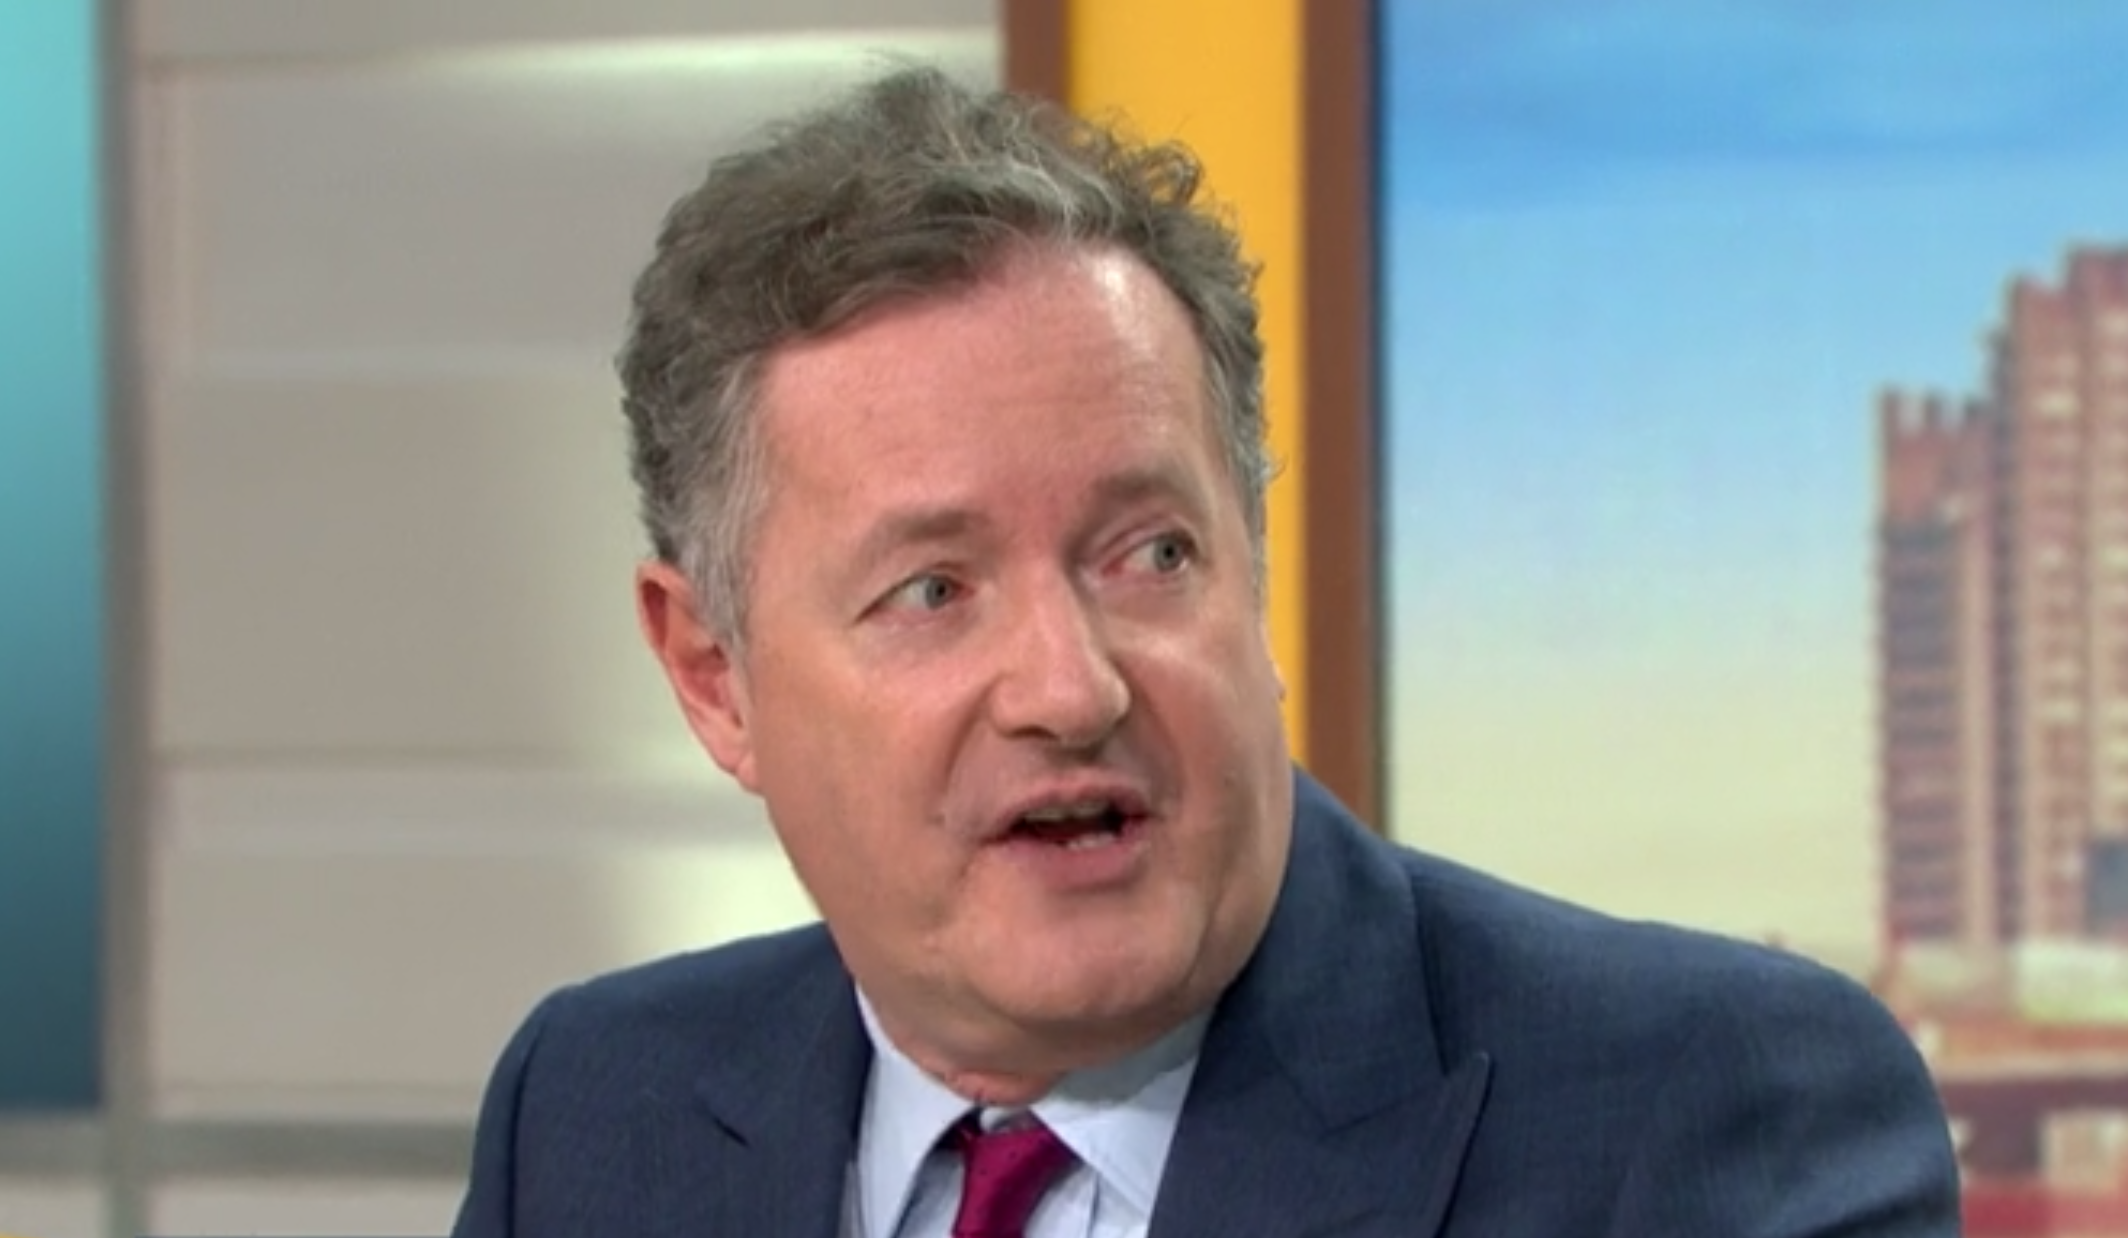 Ofcom receives 841 complaints about Piers Morgan 'mocking' Chinese language on GMB